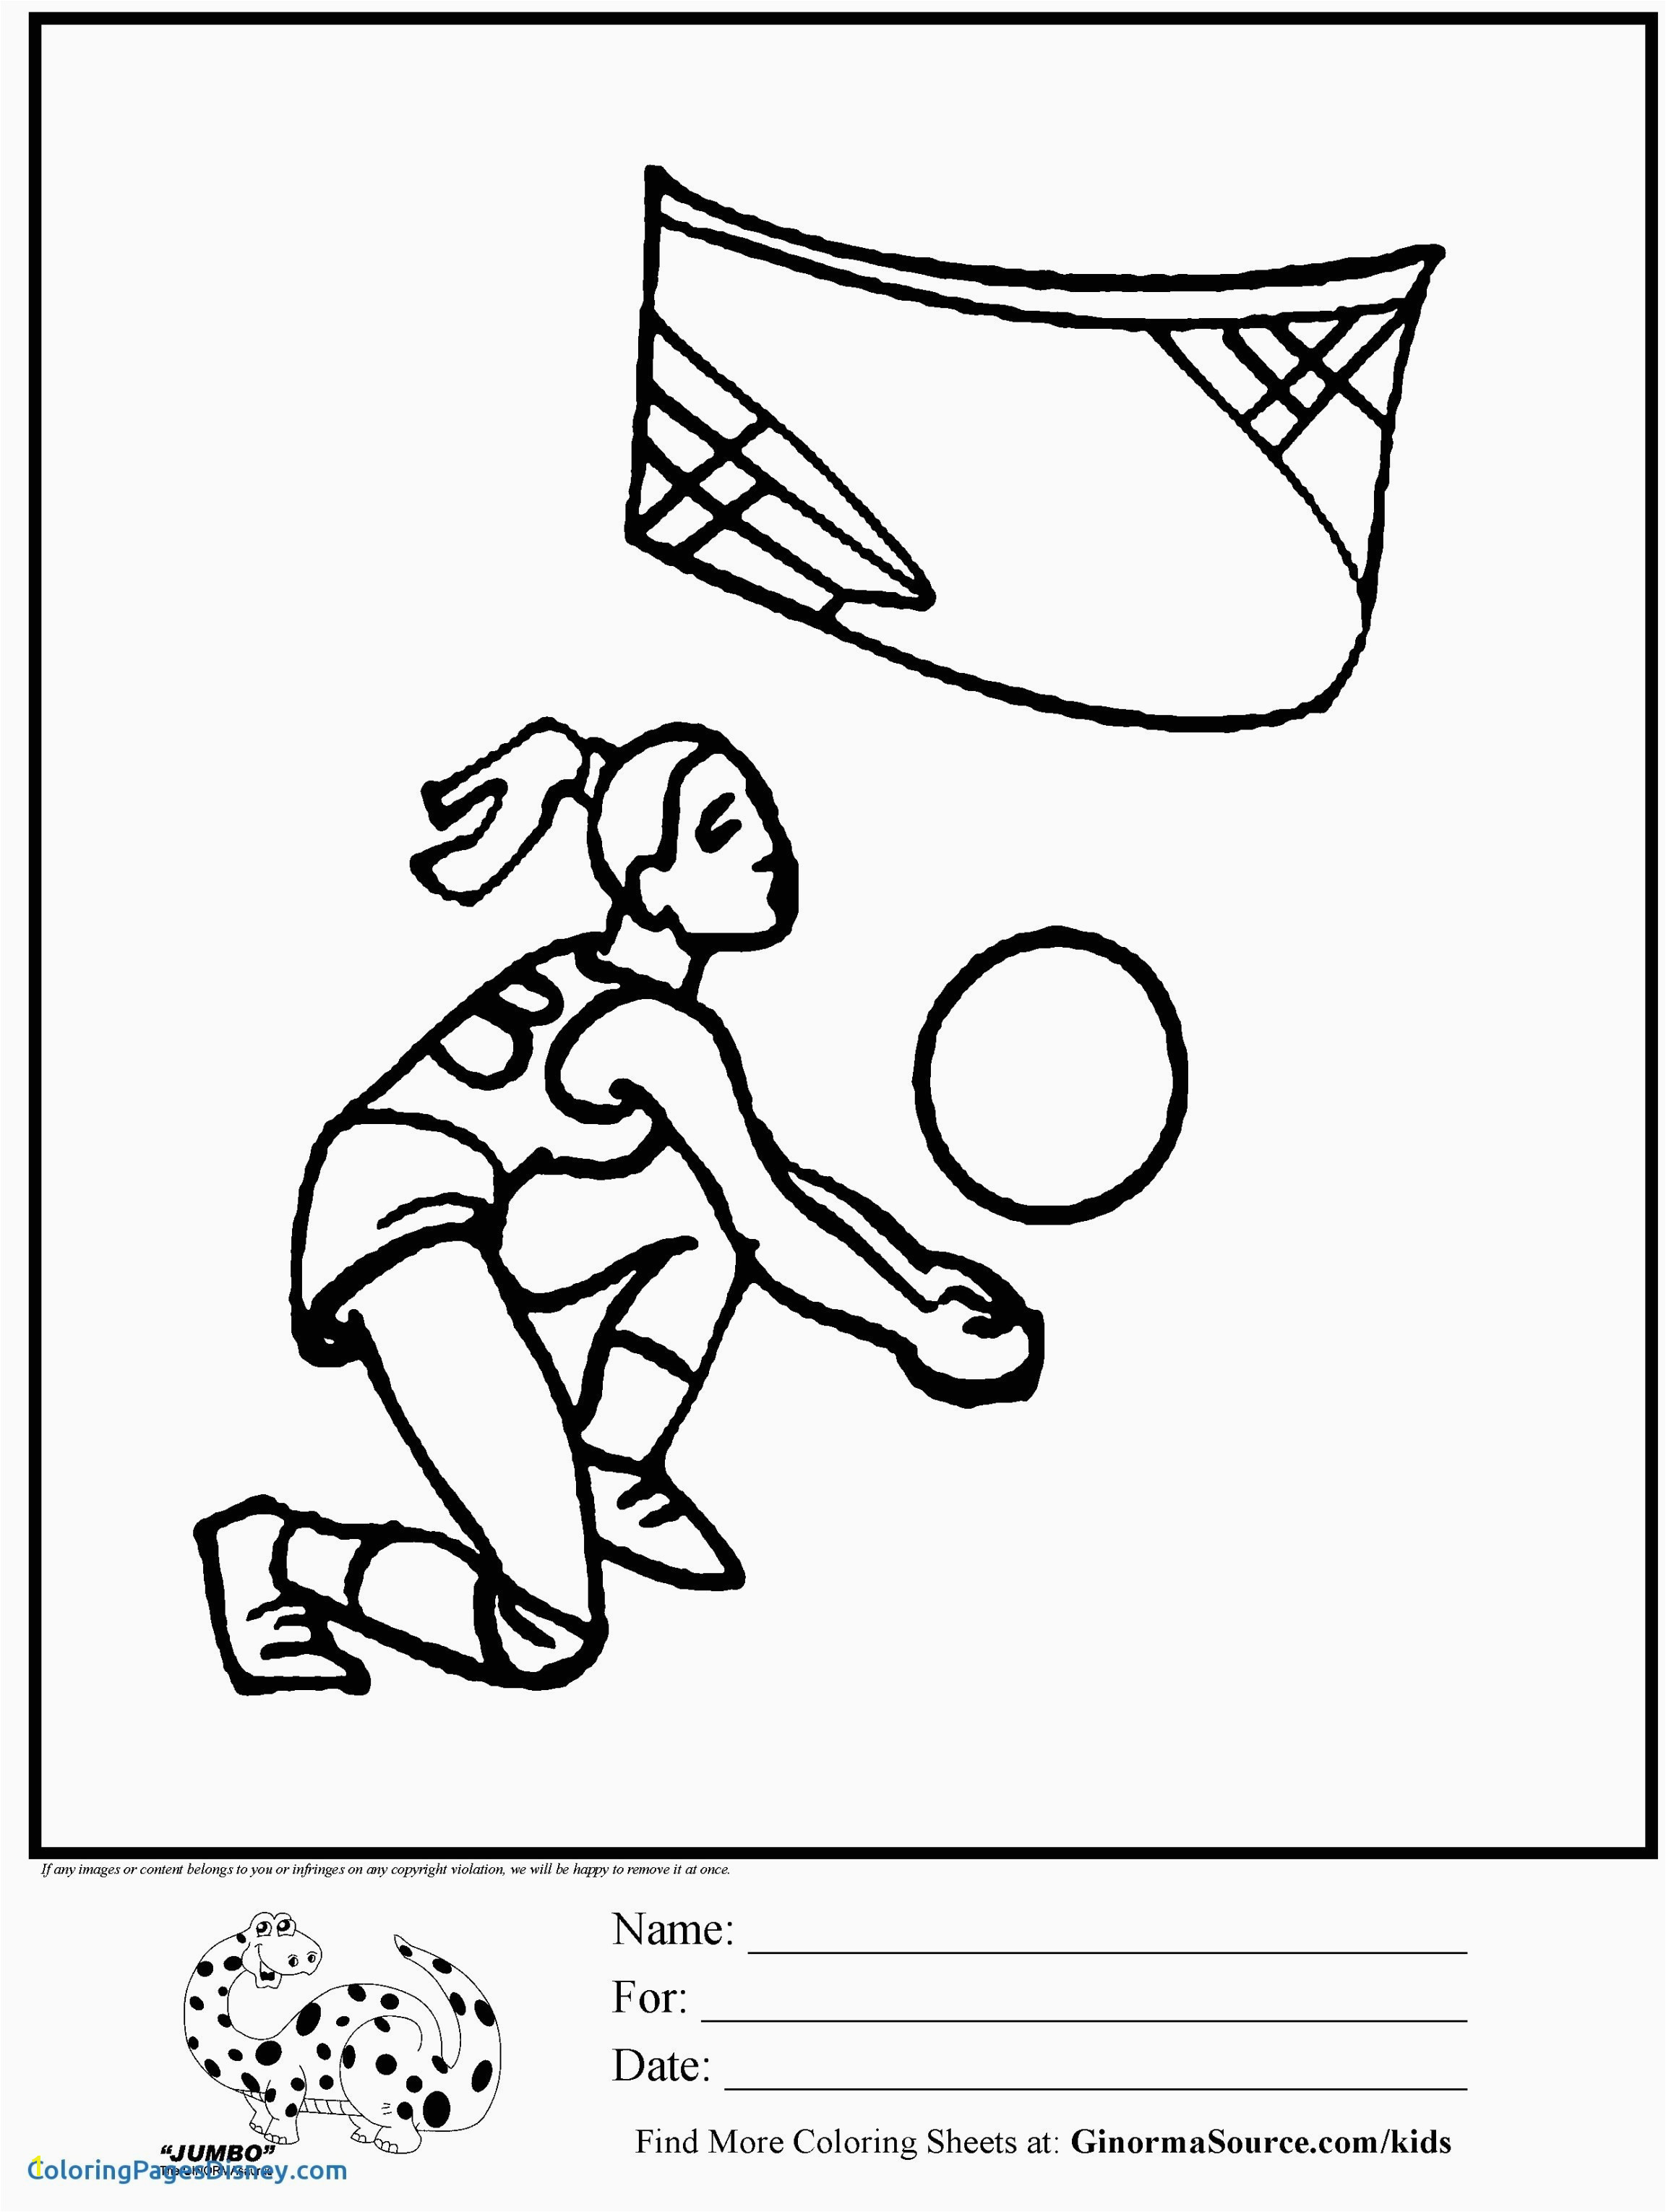 Free Printable Valentine Coloring Pages for Preschoolers Coloring Pages Preschool Awesome New Printable Free Kids S Best Page